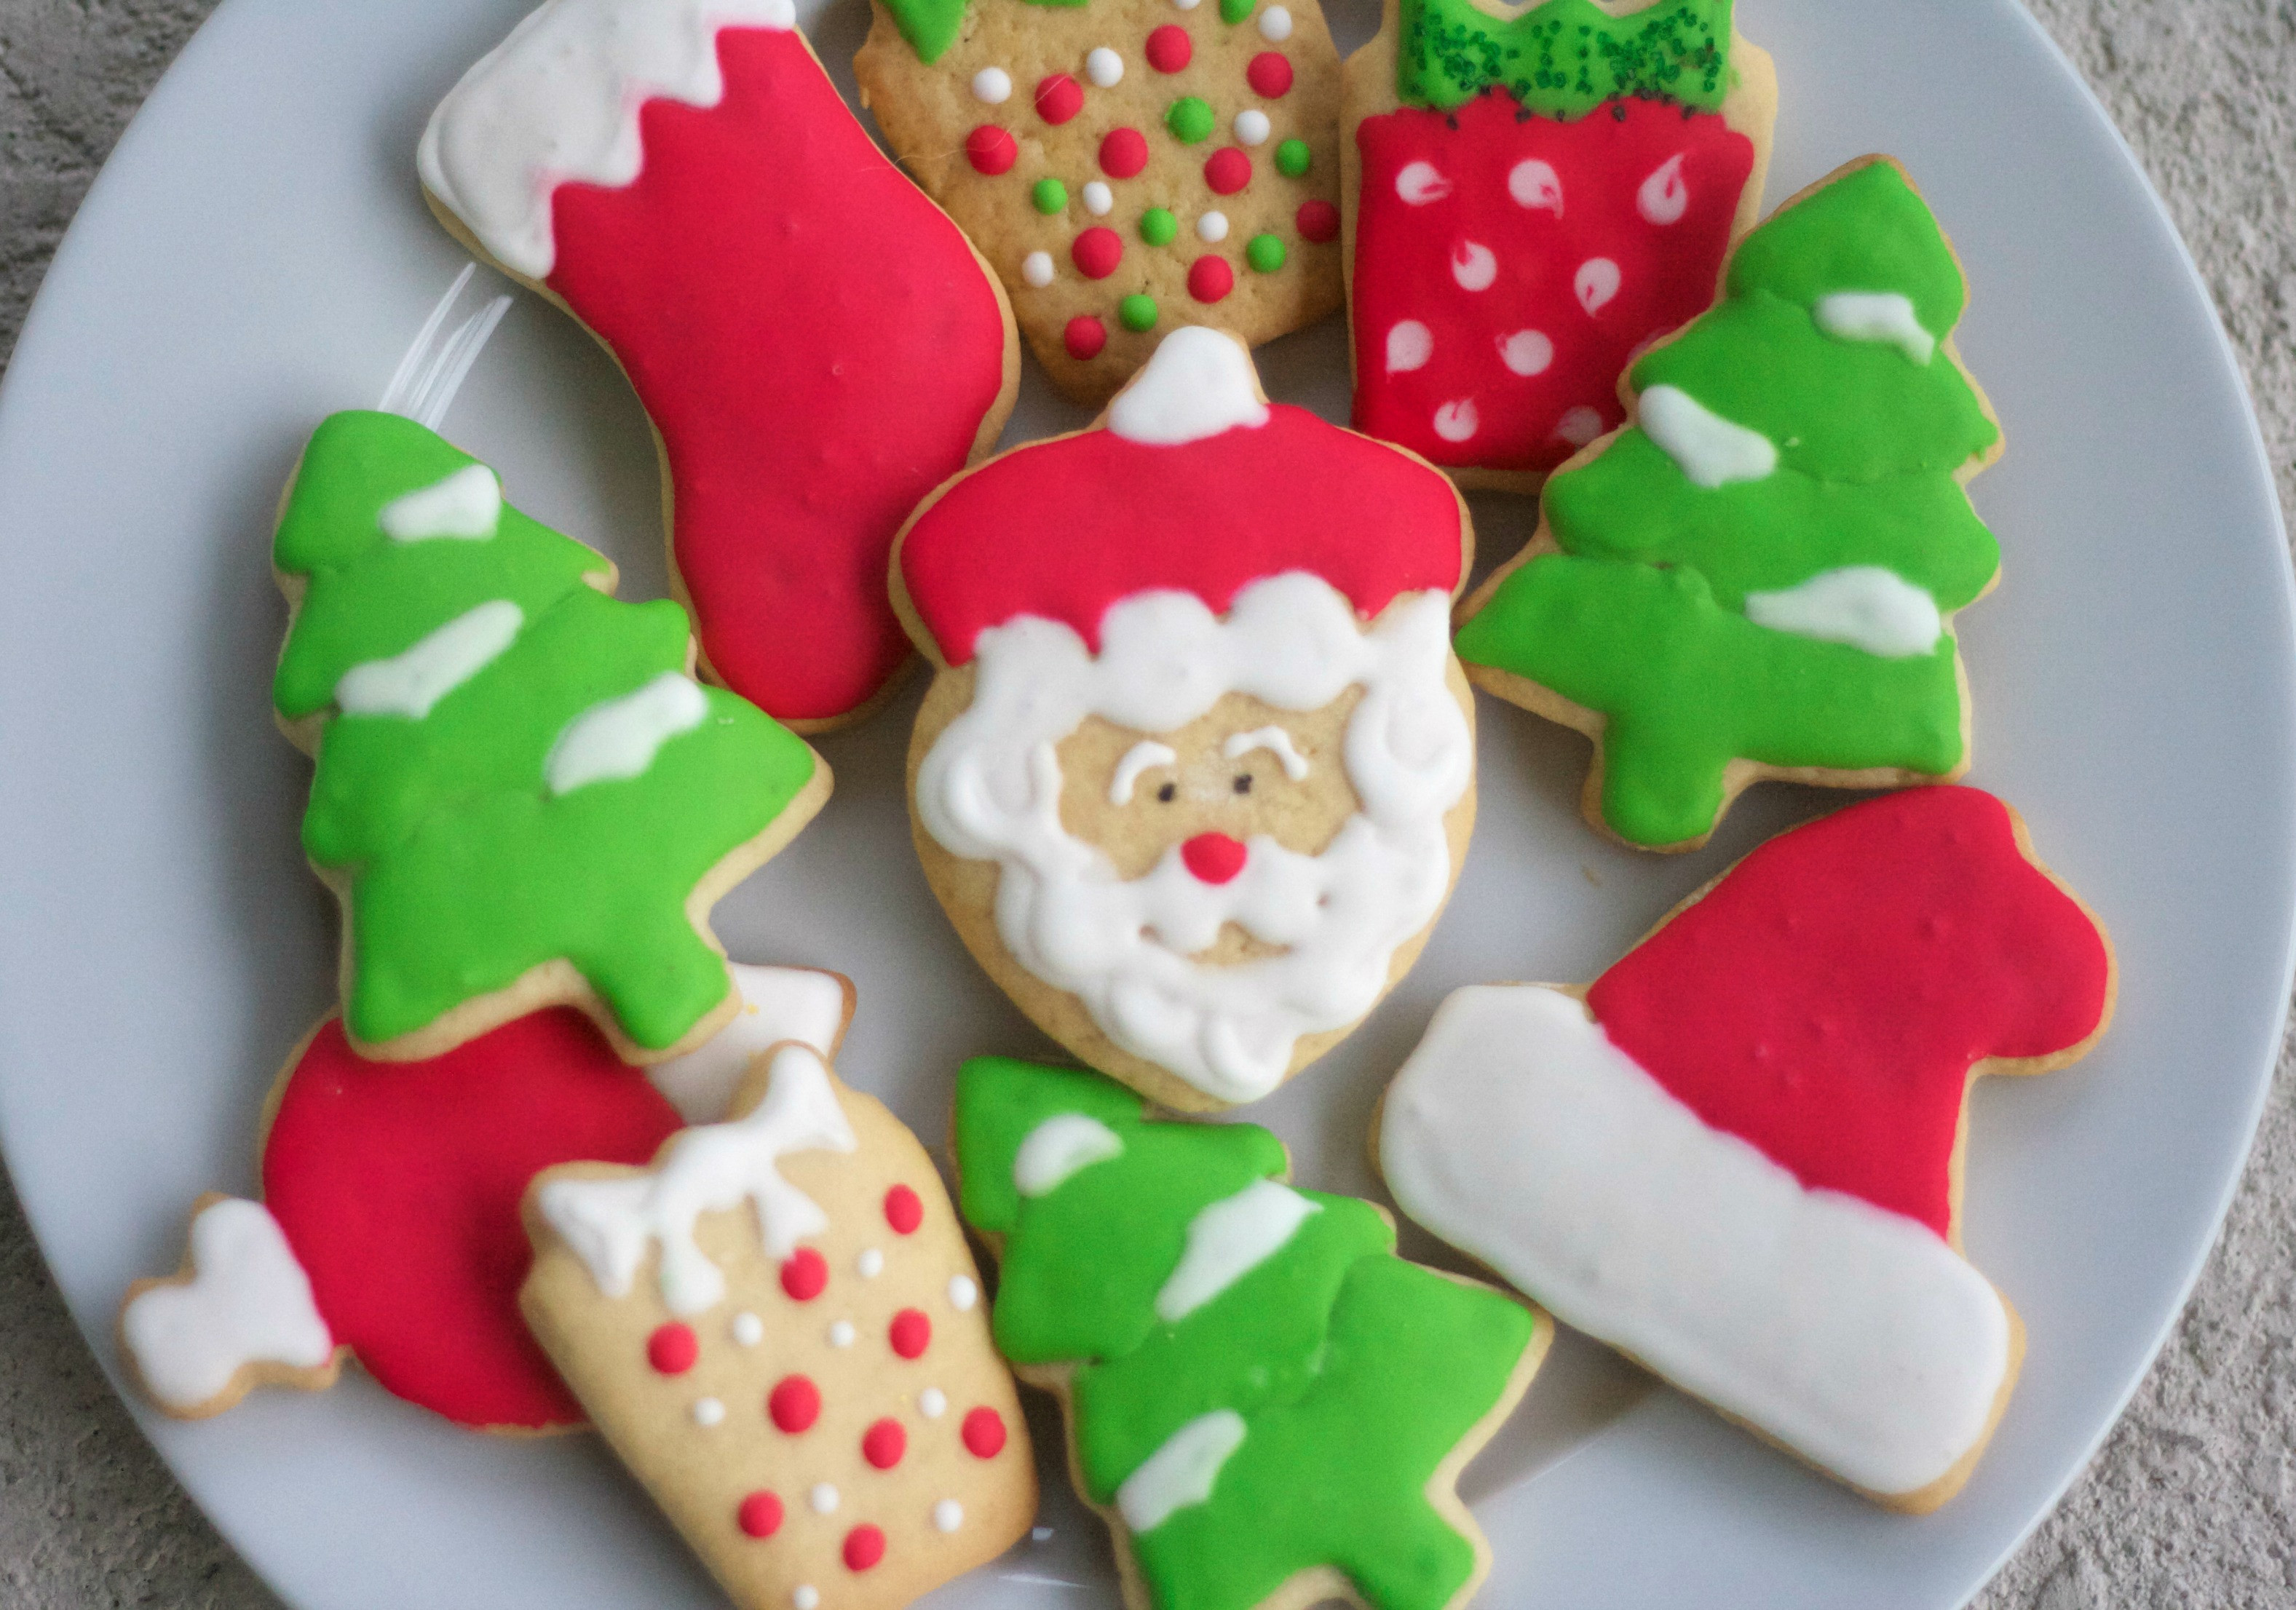 Icing For Christmas Cookies  Love Languages and Christmas Cookies